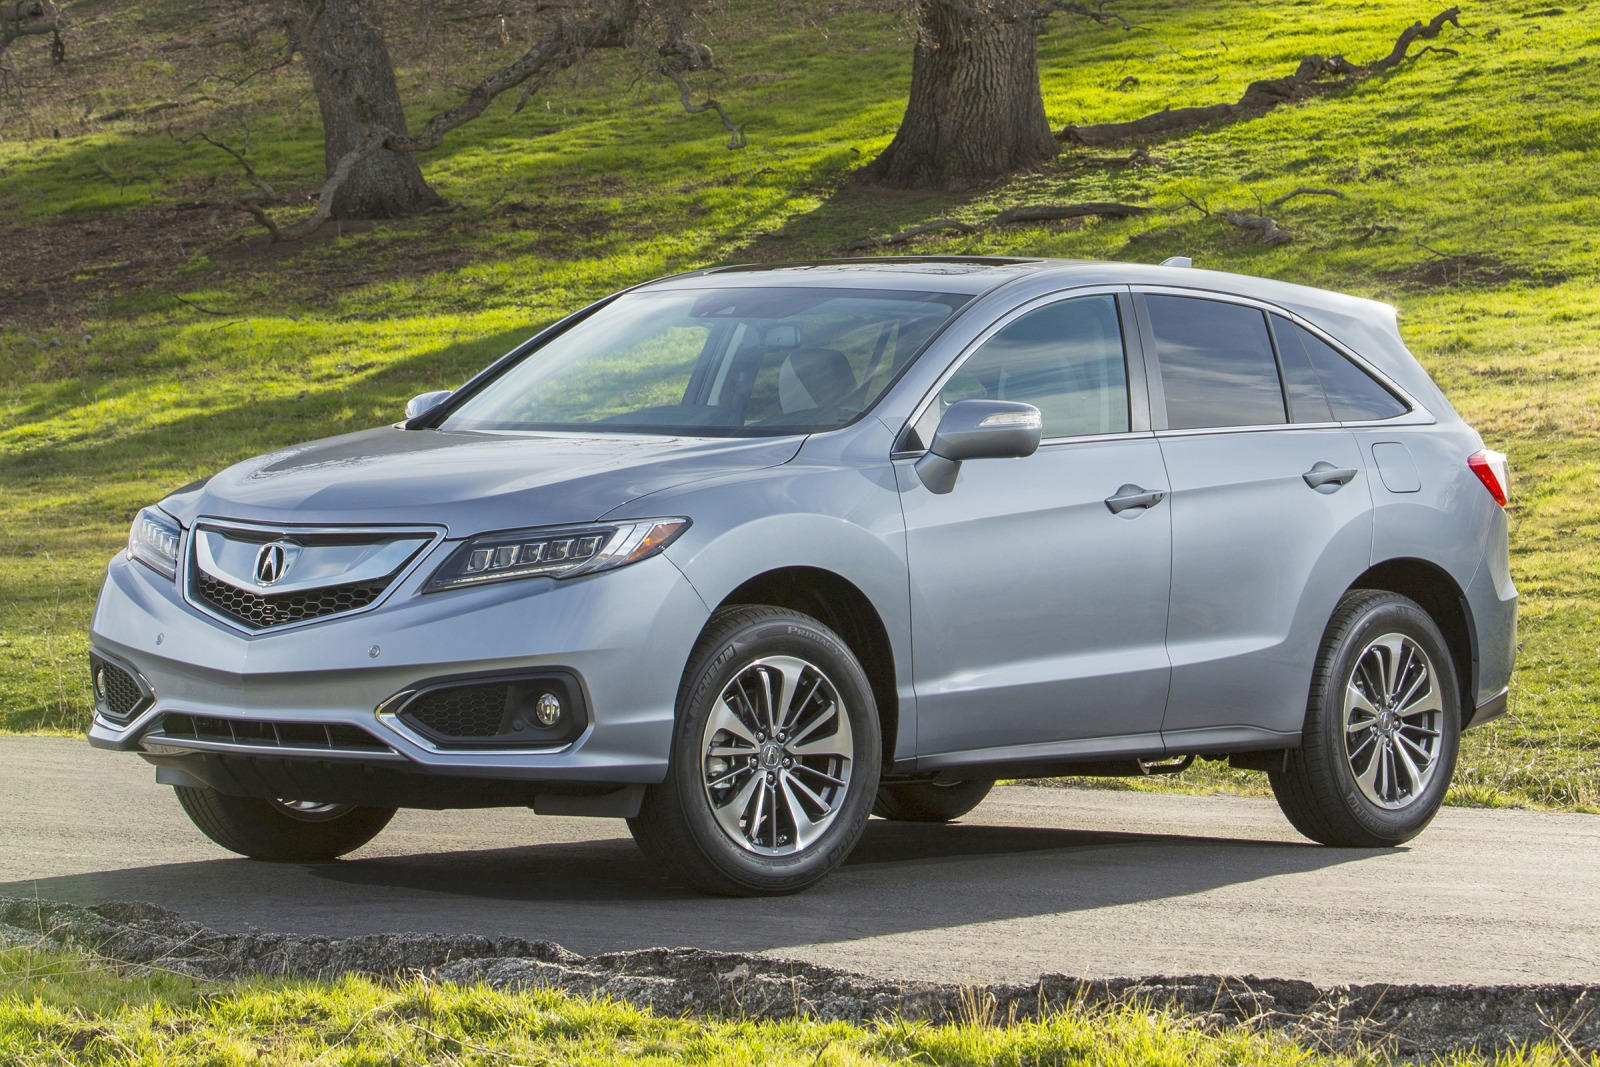 acura review first ca doubleclutch rdx drive